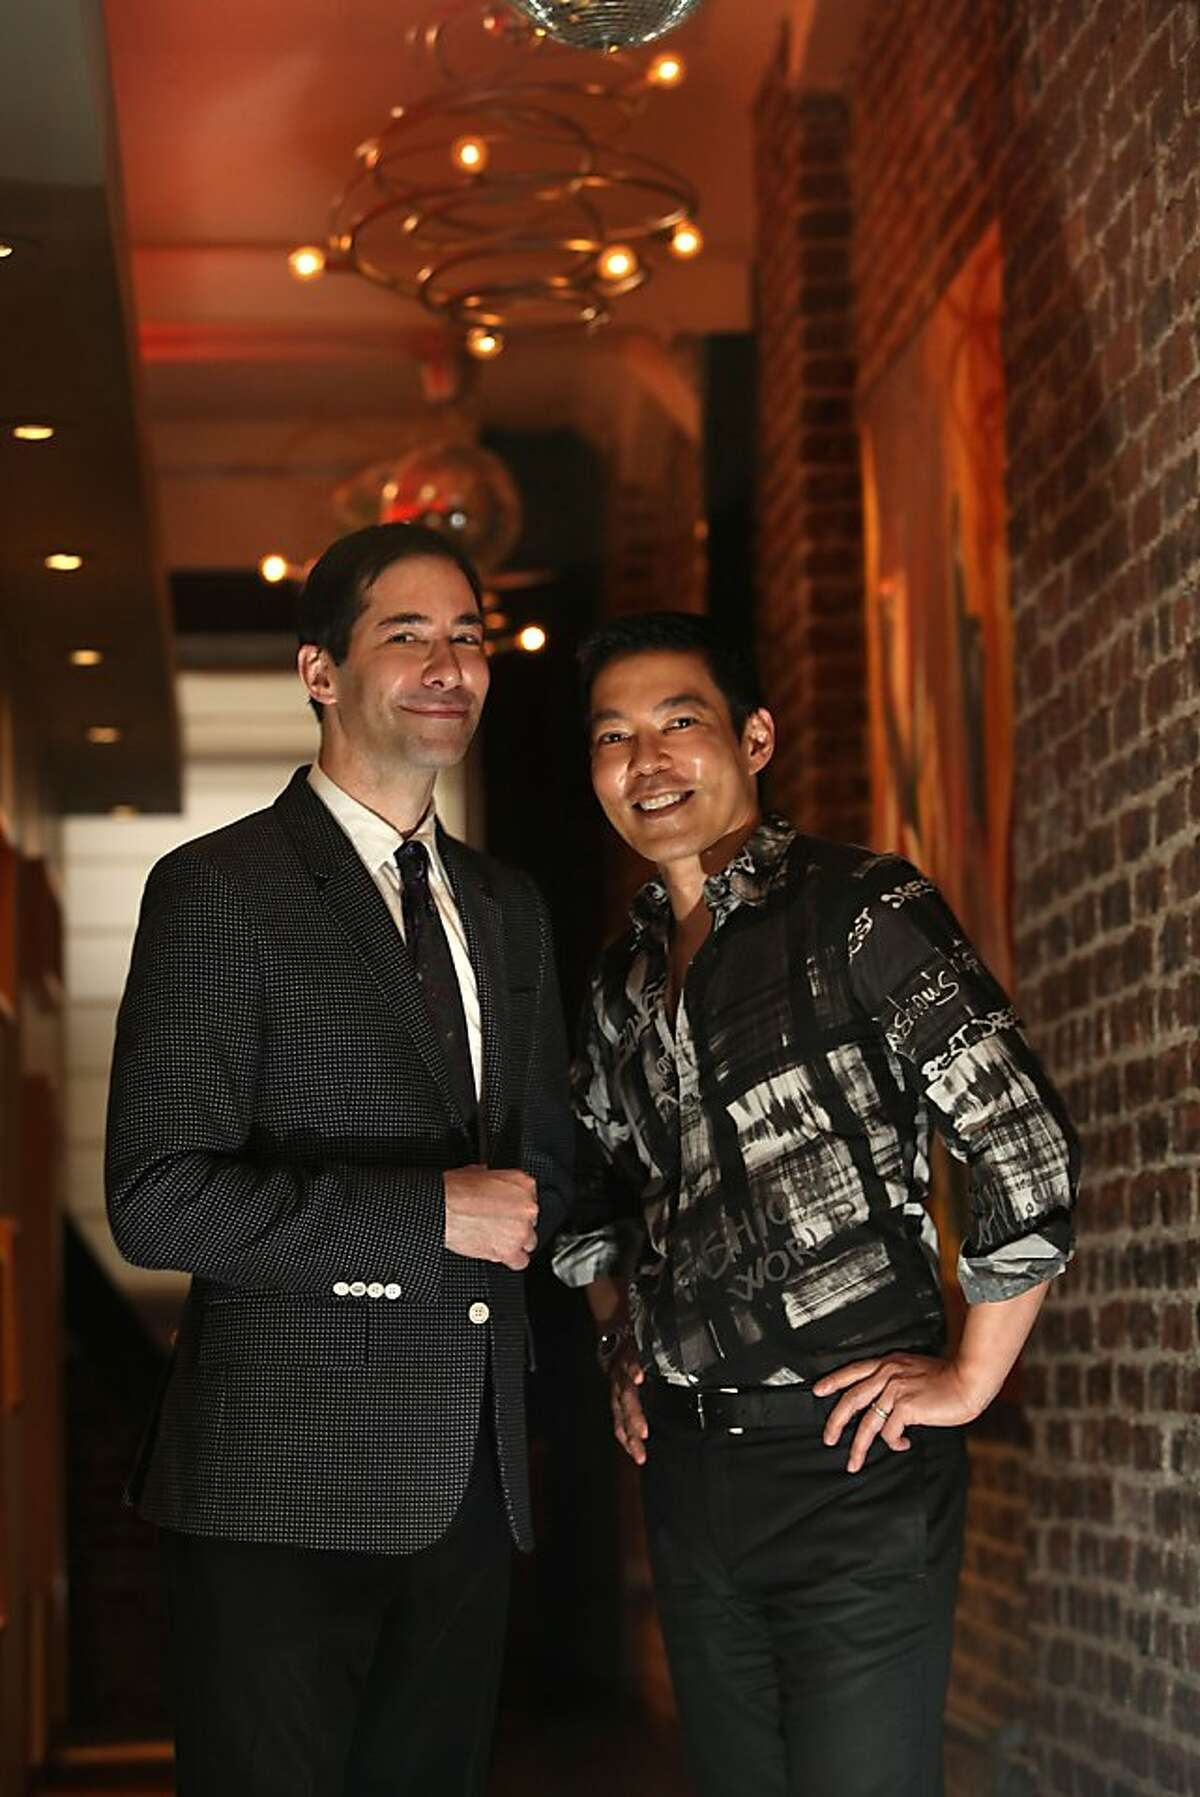 Co-founders Thomas Ellis, M.D. (l-r), medical director, and Craig Shishido, esthetic director, at Gentle Star Spa in San Francisco, Calif., on Tuesday, February 19, 2013, where they developed